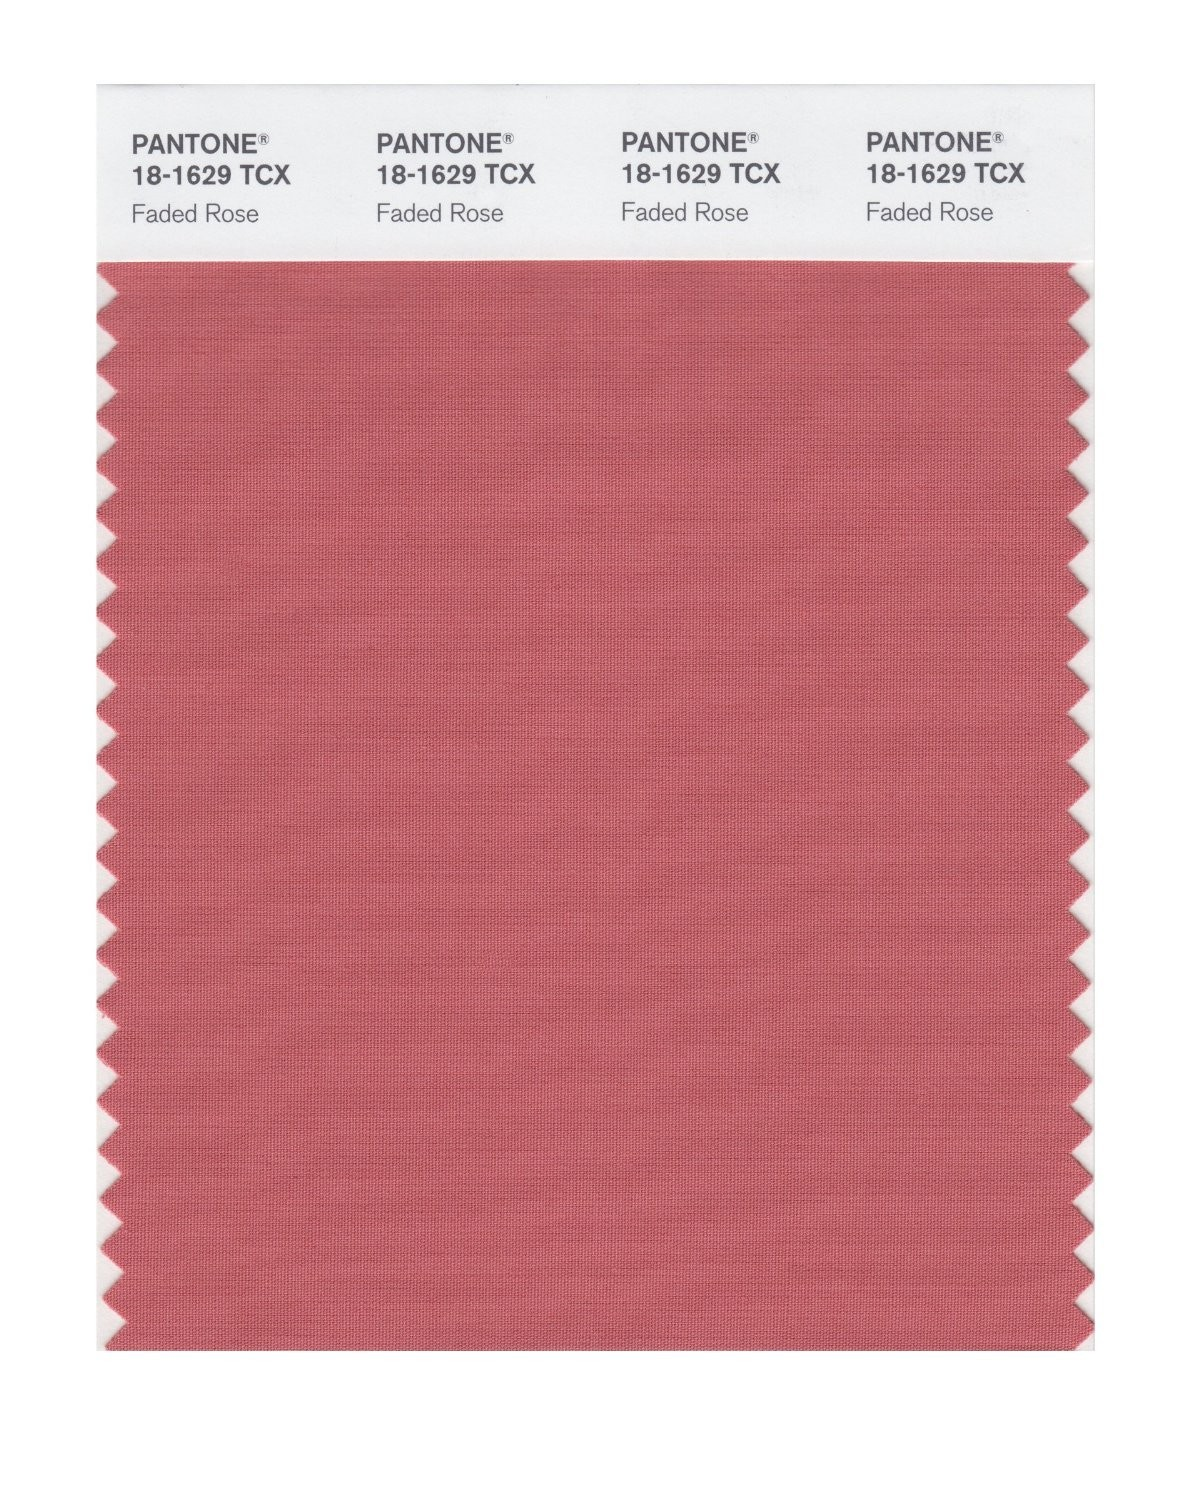 Pantone 18-1629 TCX Swatch Card Faded Rose